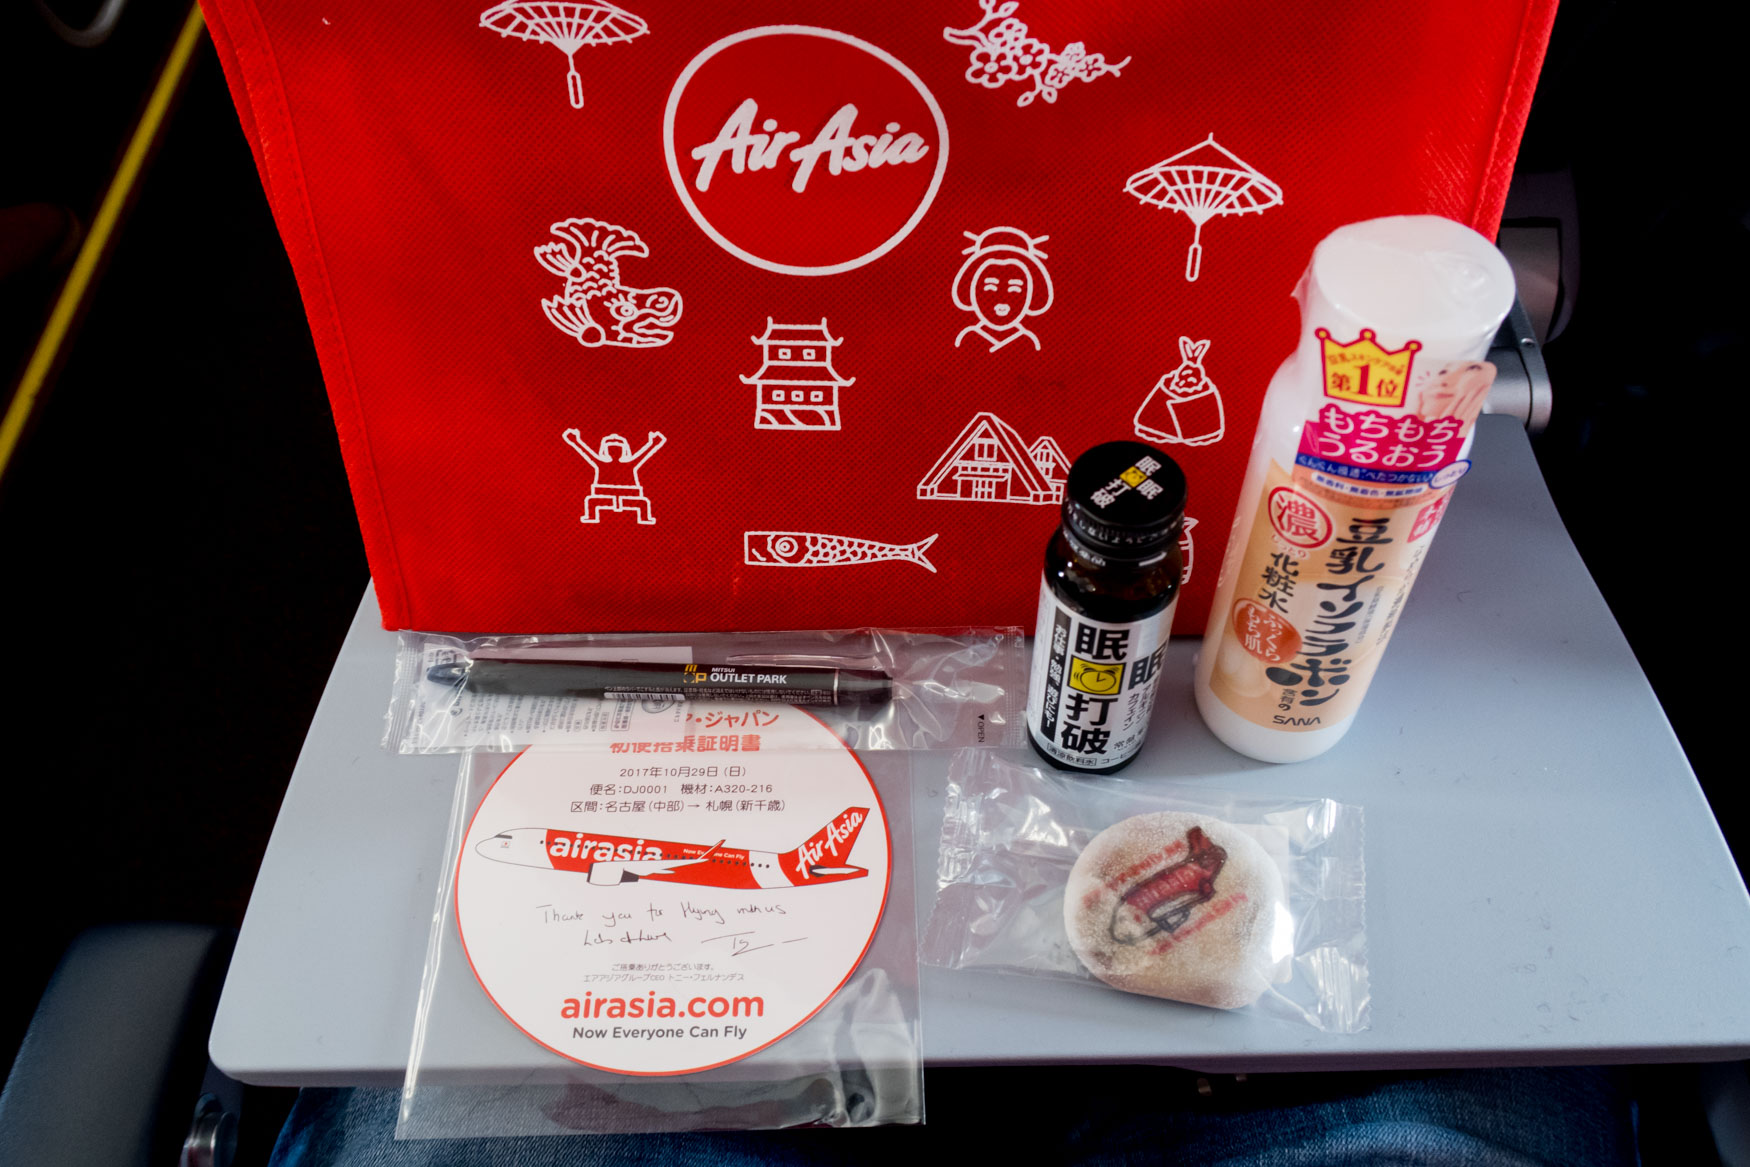 AirAsia Japan Inaugural Flight Gift Bag Contents